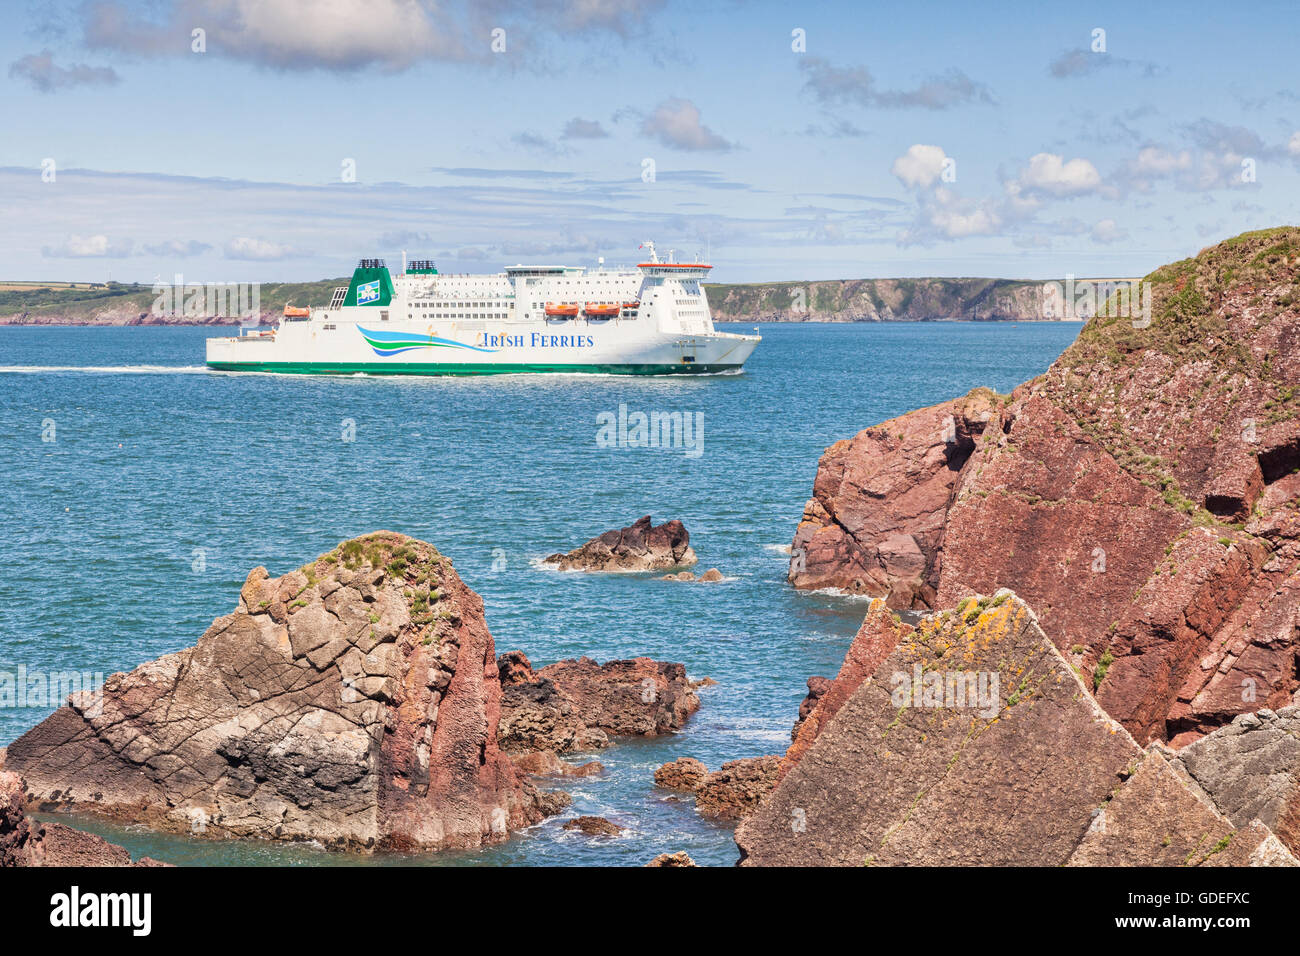 Irish Ferries ferry Isle of Inishmore sails into Milford Haven as it approaches Pembroke Dock, Pembrokeshire, Wales, - Stock Image